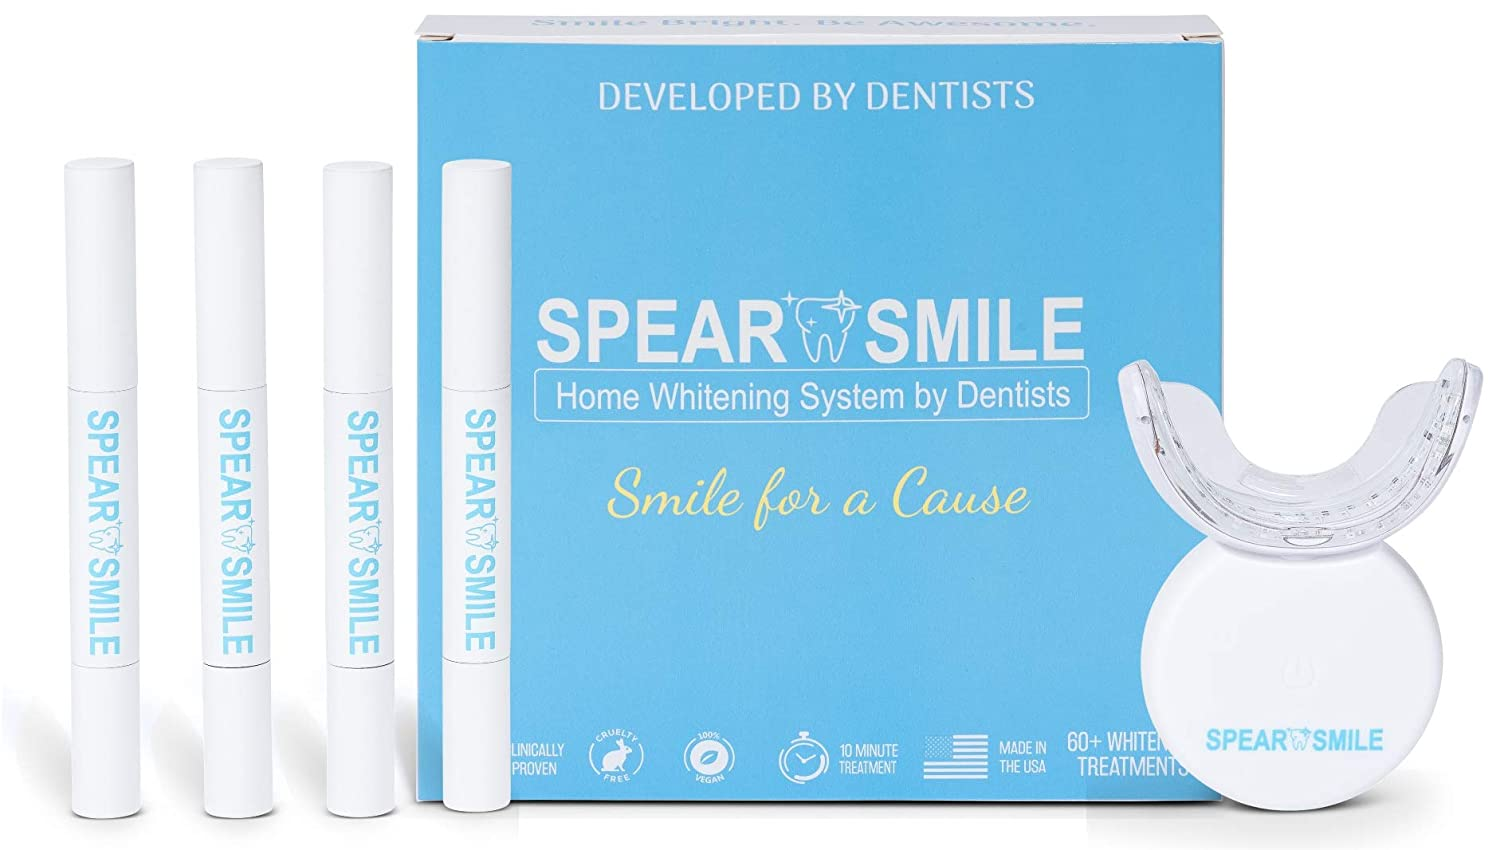 Spear Smile Luxury Home Teeth Whitening Kit, 32X LED Professional light for Whiter Teeth Without Sensitivity, Includes 4 Deluxe Teeth Whitening Pens, 60 Whitening Treatments, Teeth Whitening System